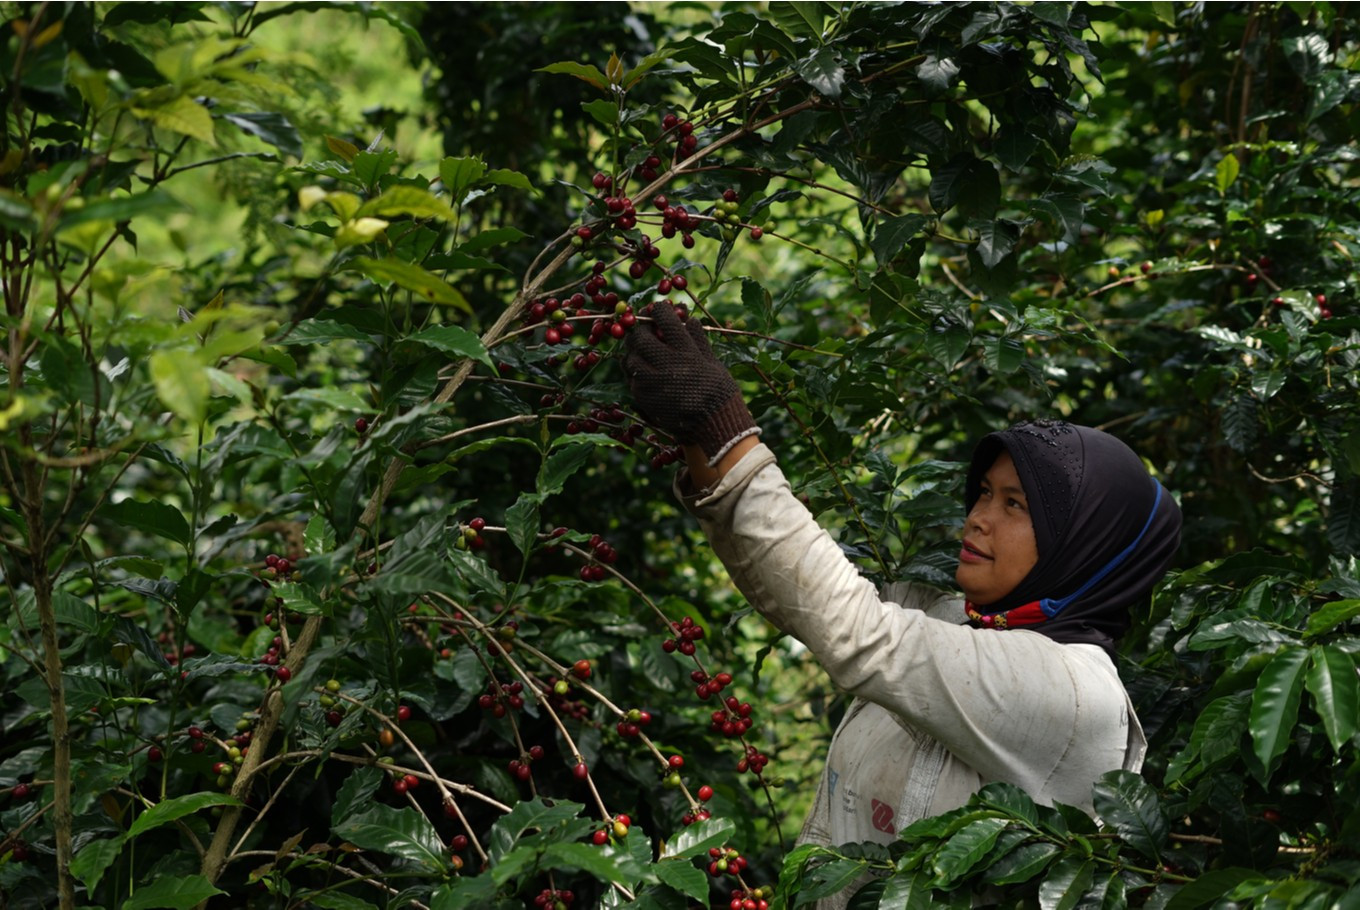 'Filosofi Kopi: Aroma Gayo' explores coffee, philosophy in Aceh